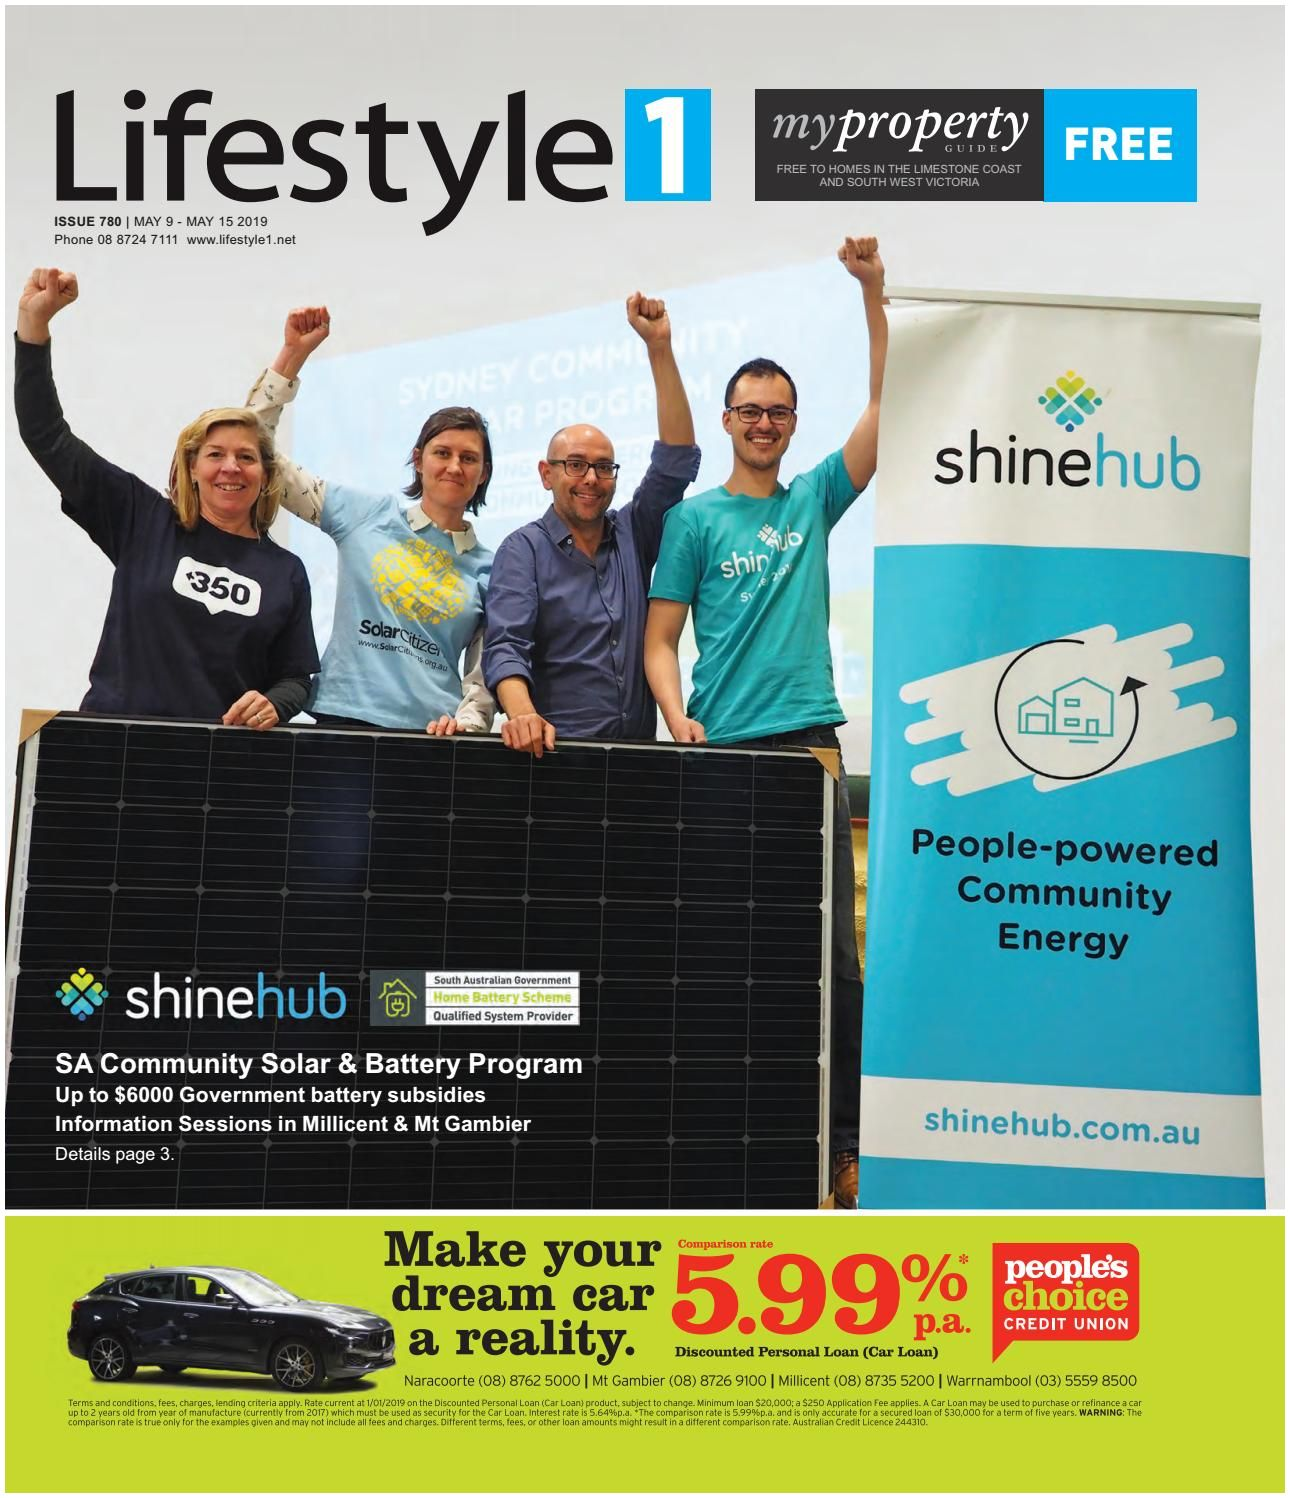 Credit Union Business Magazine Lifestyle1 Magazine issue 780 by Lifestyle1 issuu